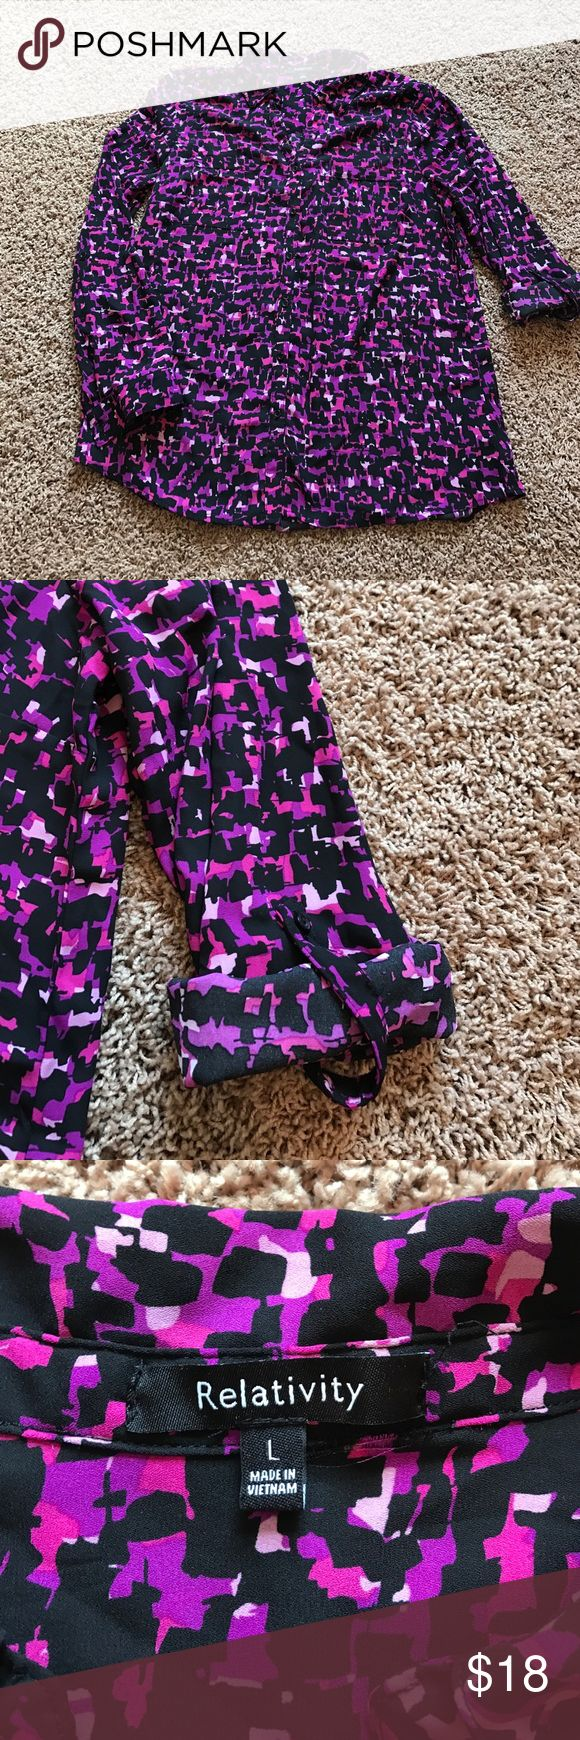 """Tunic blouse roll up sleeves pink purple black Tunic blouse from relativity with roll up sleeves! Cute in black, pale pink, dark pink and purple. 28"""" from shoulder to hem. Bust 22"""". Relativity Tops Tunics"""